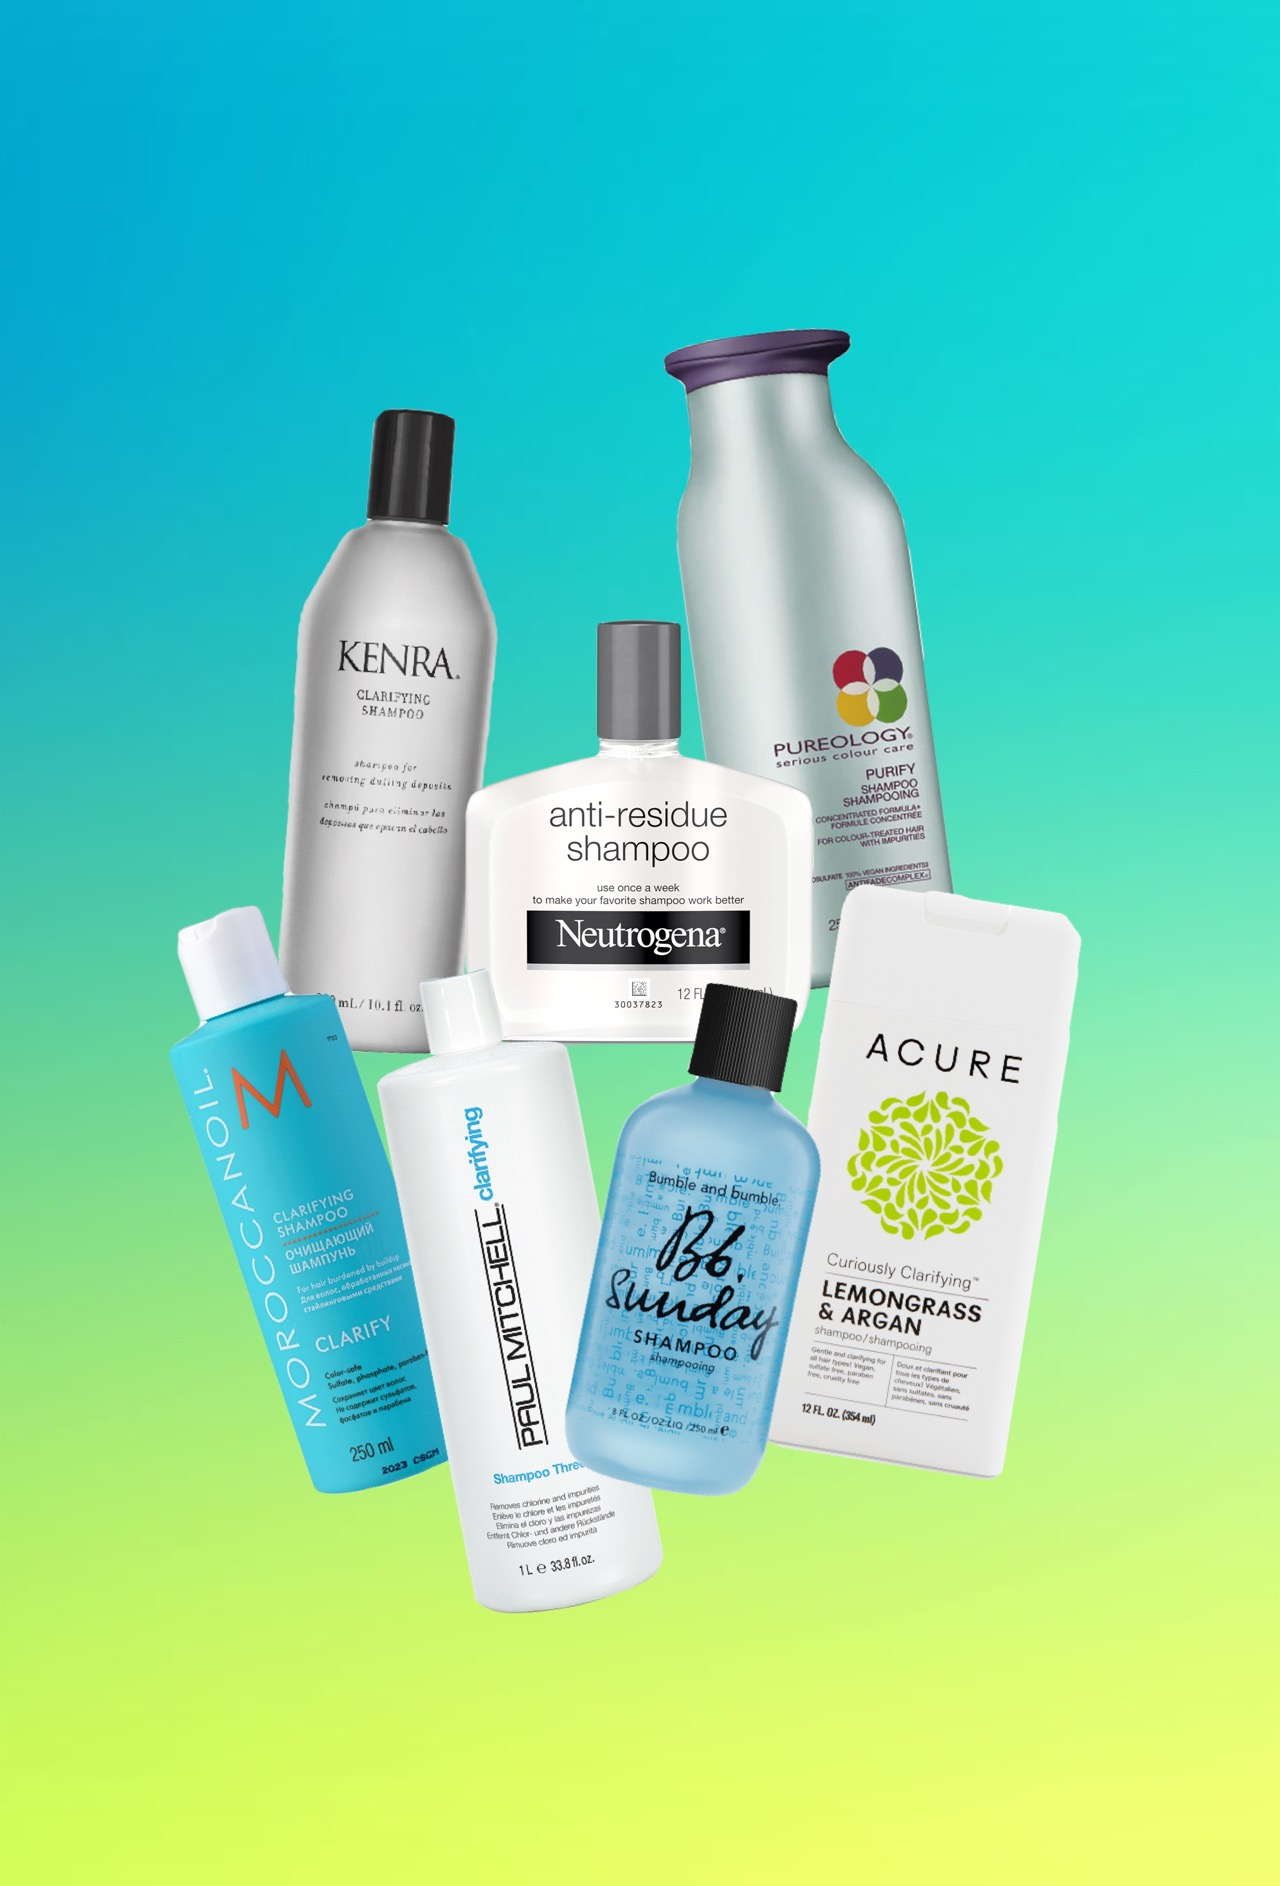 7 Best Clarifying Shampoos In 2018 Reviews And Buyers Guide